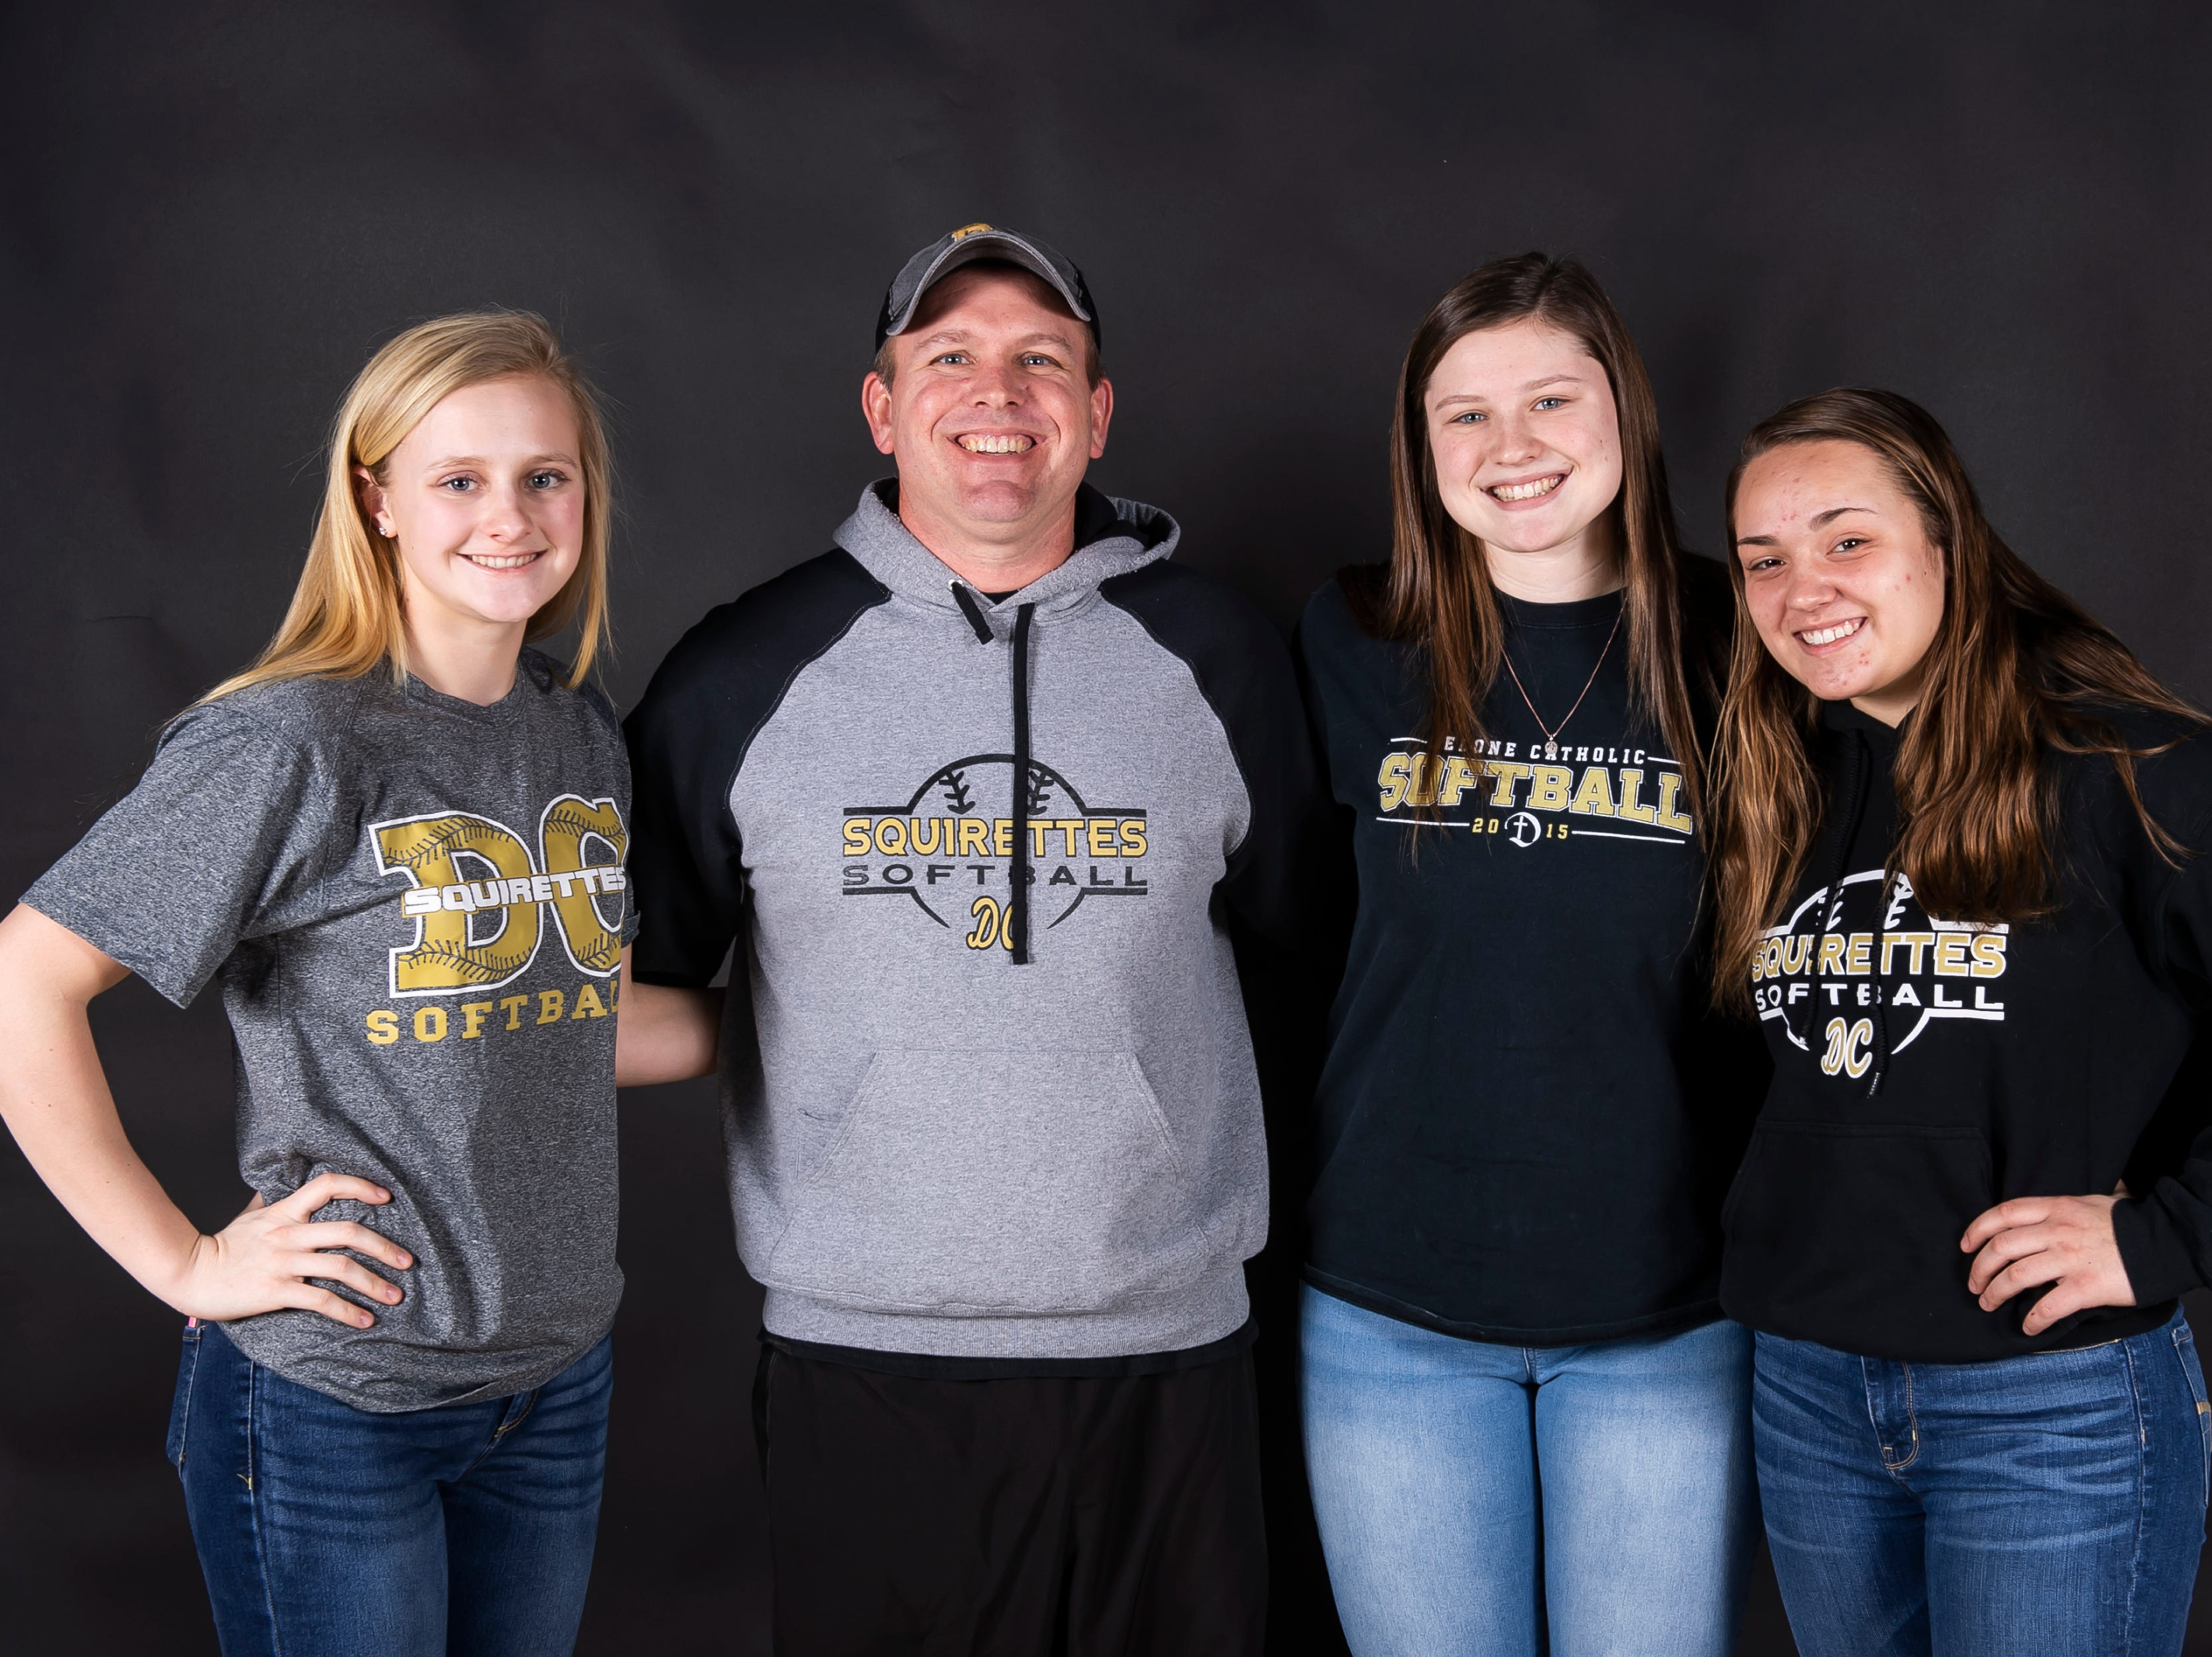 (From left) Delone Catholic softball's Lauren Little, coach Matt Rickrode, Maggie Rickrode and Katie Ernst pose in the GameTimePA photo booth during spring sports media day in York Sunday, March 10, 2019.